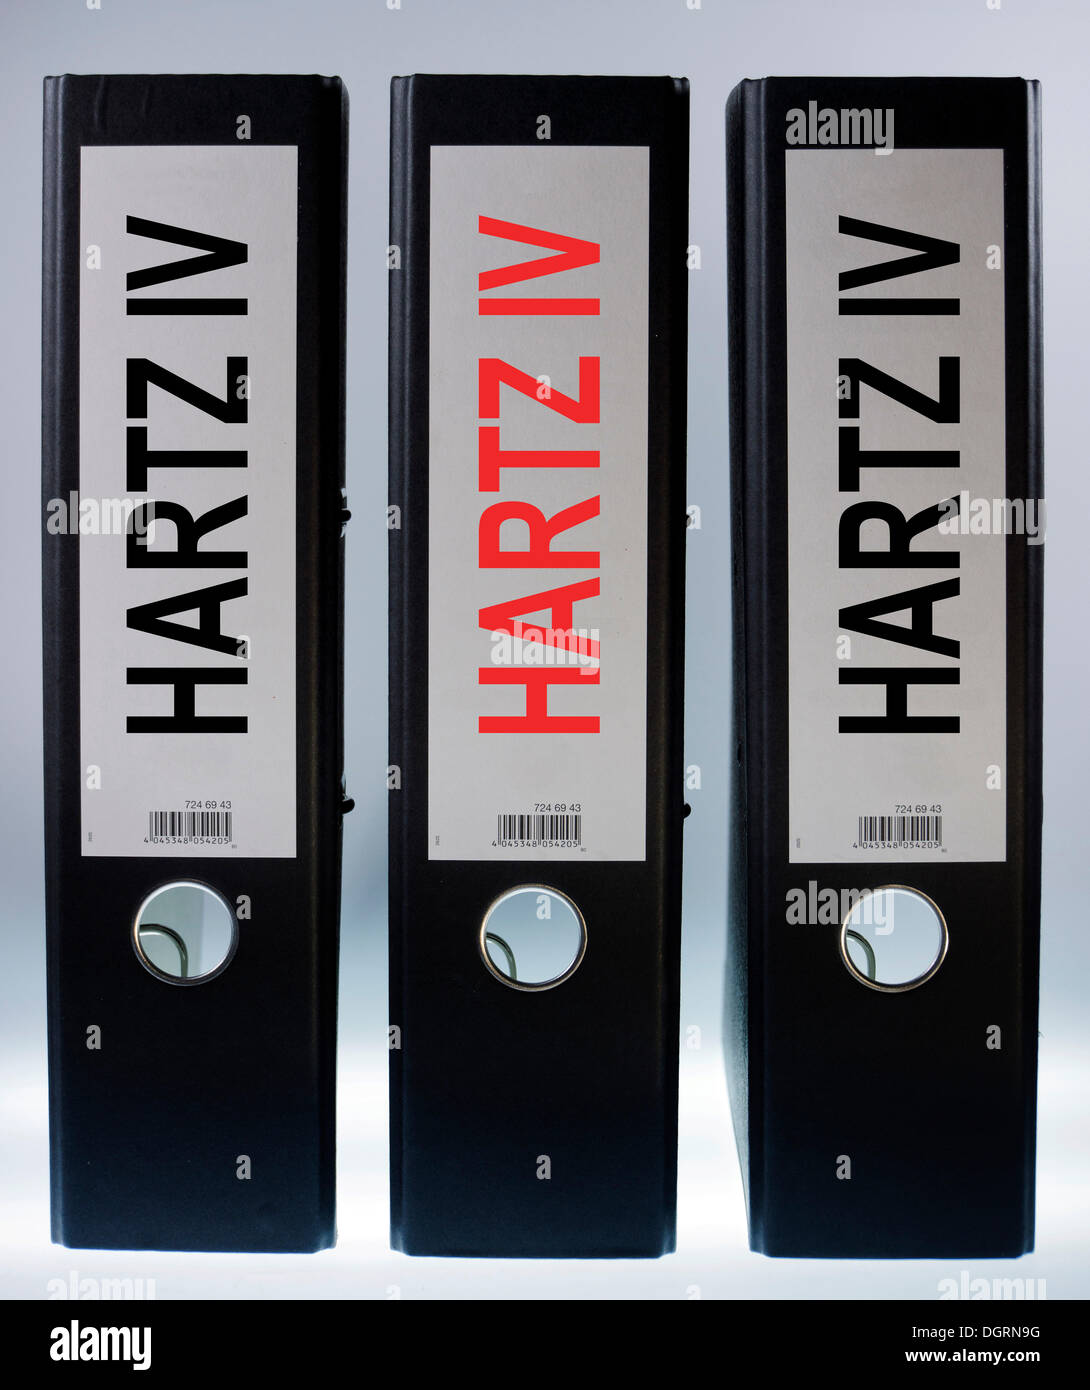 Three ring binders labeled Hartz IV, German term for long-term unemployment benefits, symbolic image - Stock Image